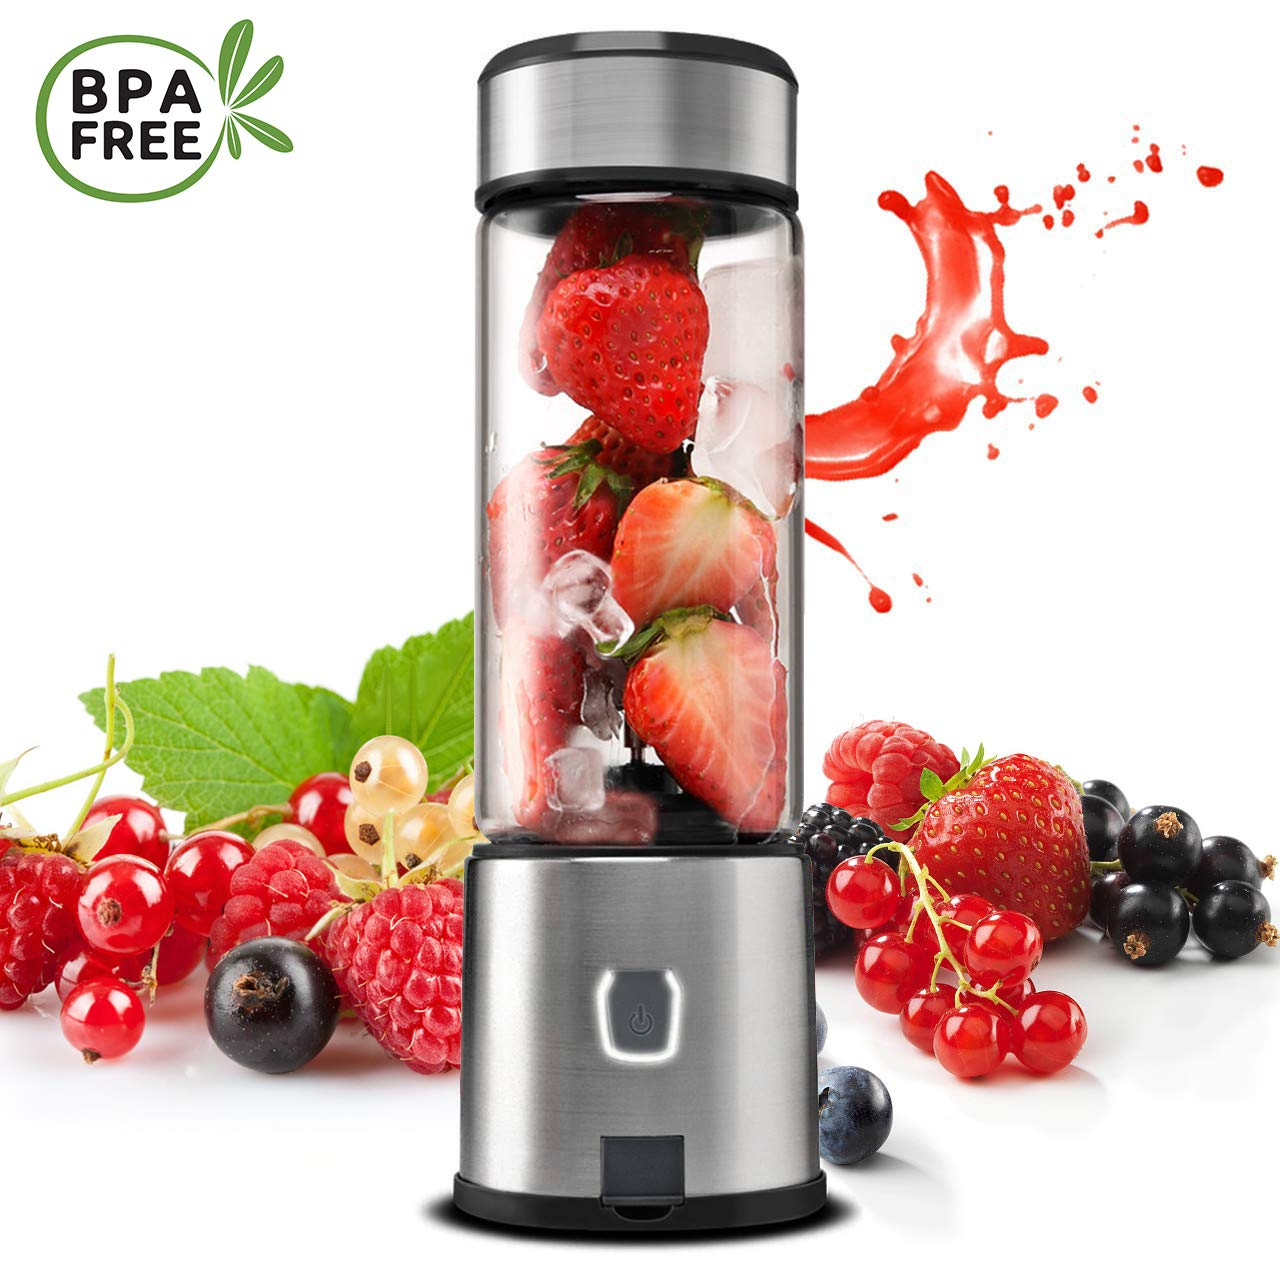 Personal Blender Glass, TOPQSC USB Rechargeable Portable Blender for Shake and Smoothie, Small Portable Blender Juicer Cup, Single Serve Blender Cordless Fruit Mixer with 5200 mAh Rechargeable Battery for Juice, Protein Shake, Baby Food by TOPQSC